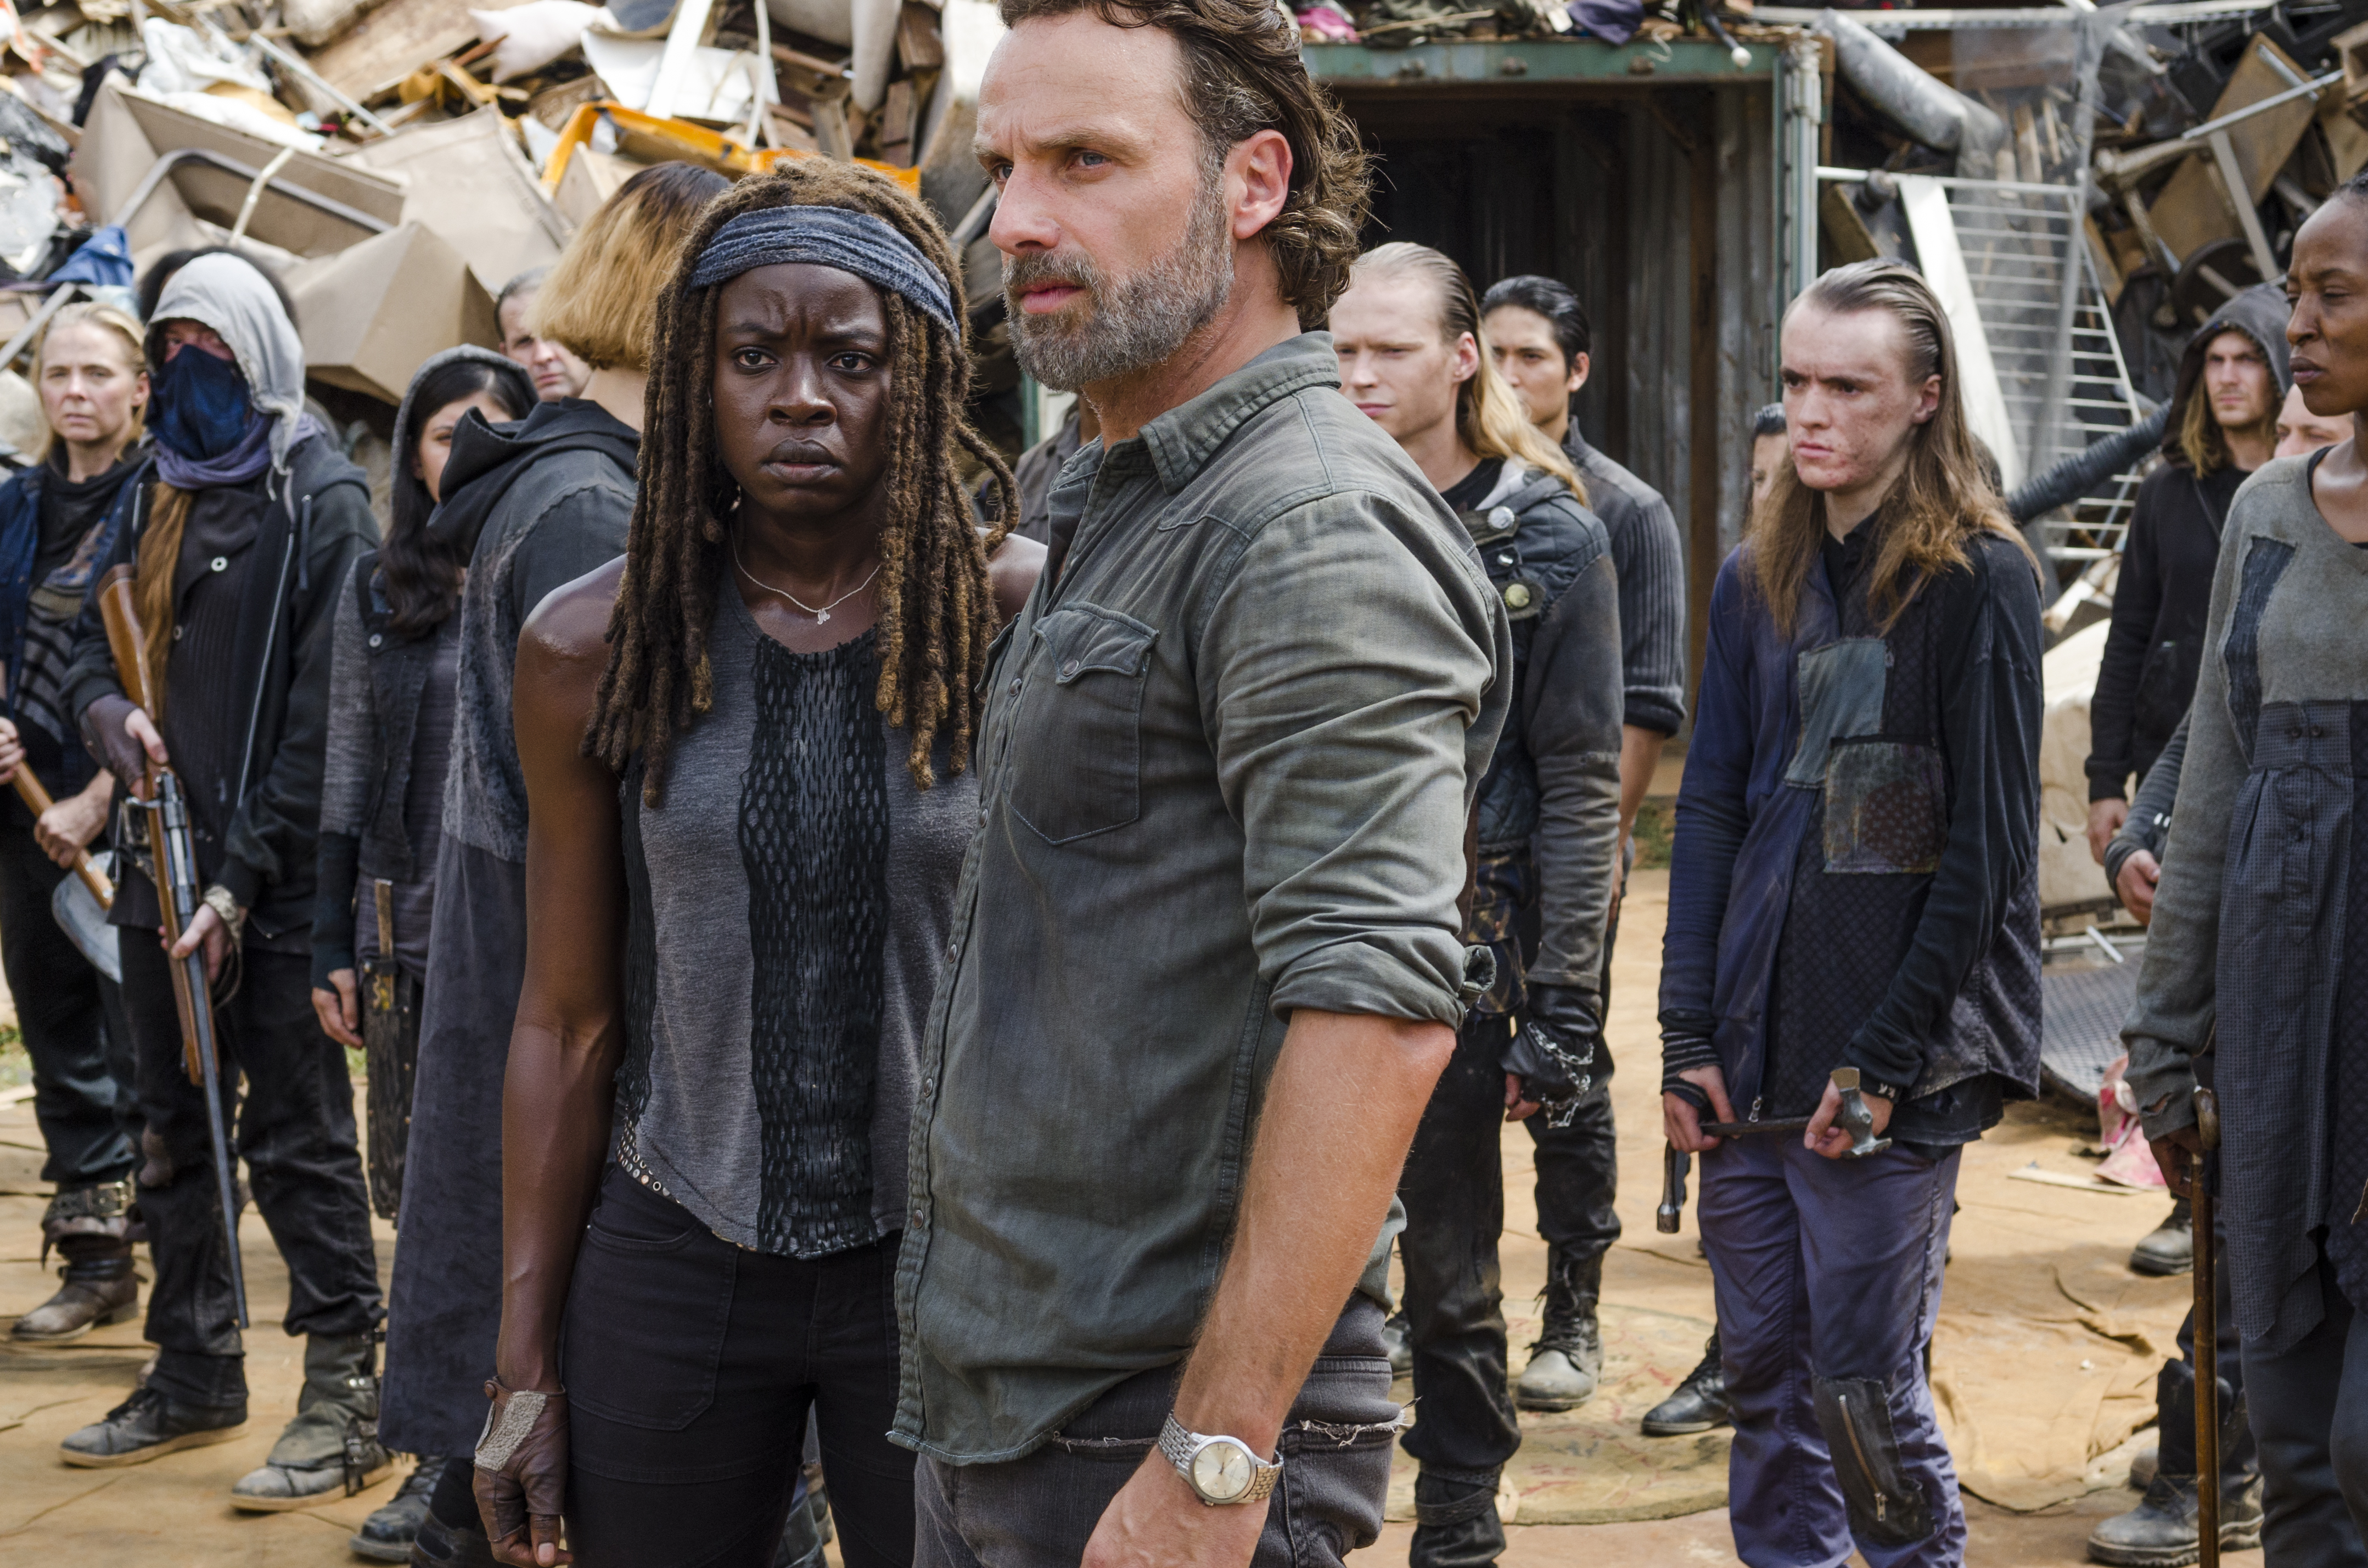 THE WALKING DEAD Recap: Rick and Co. Make Some